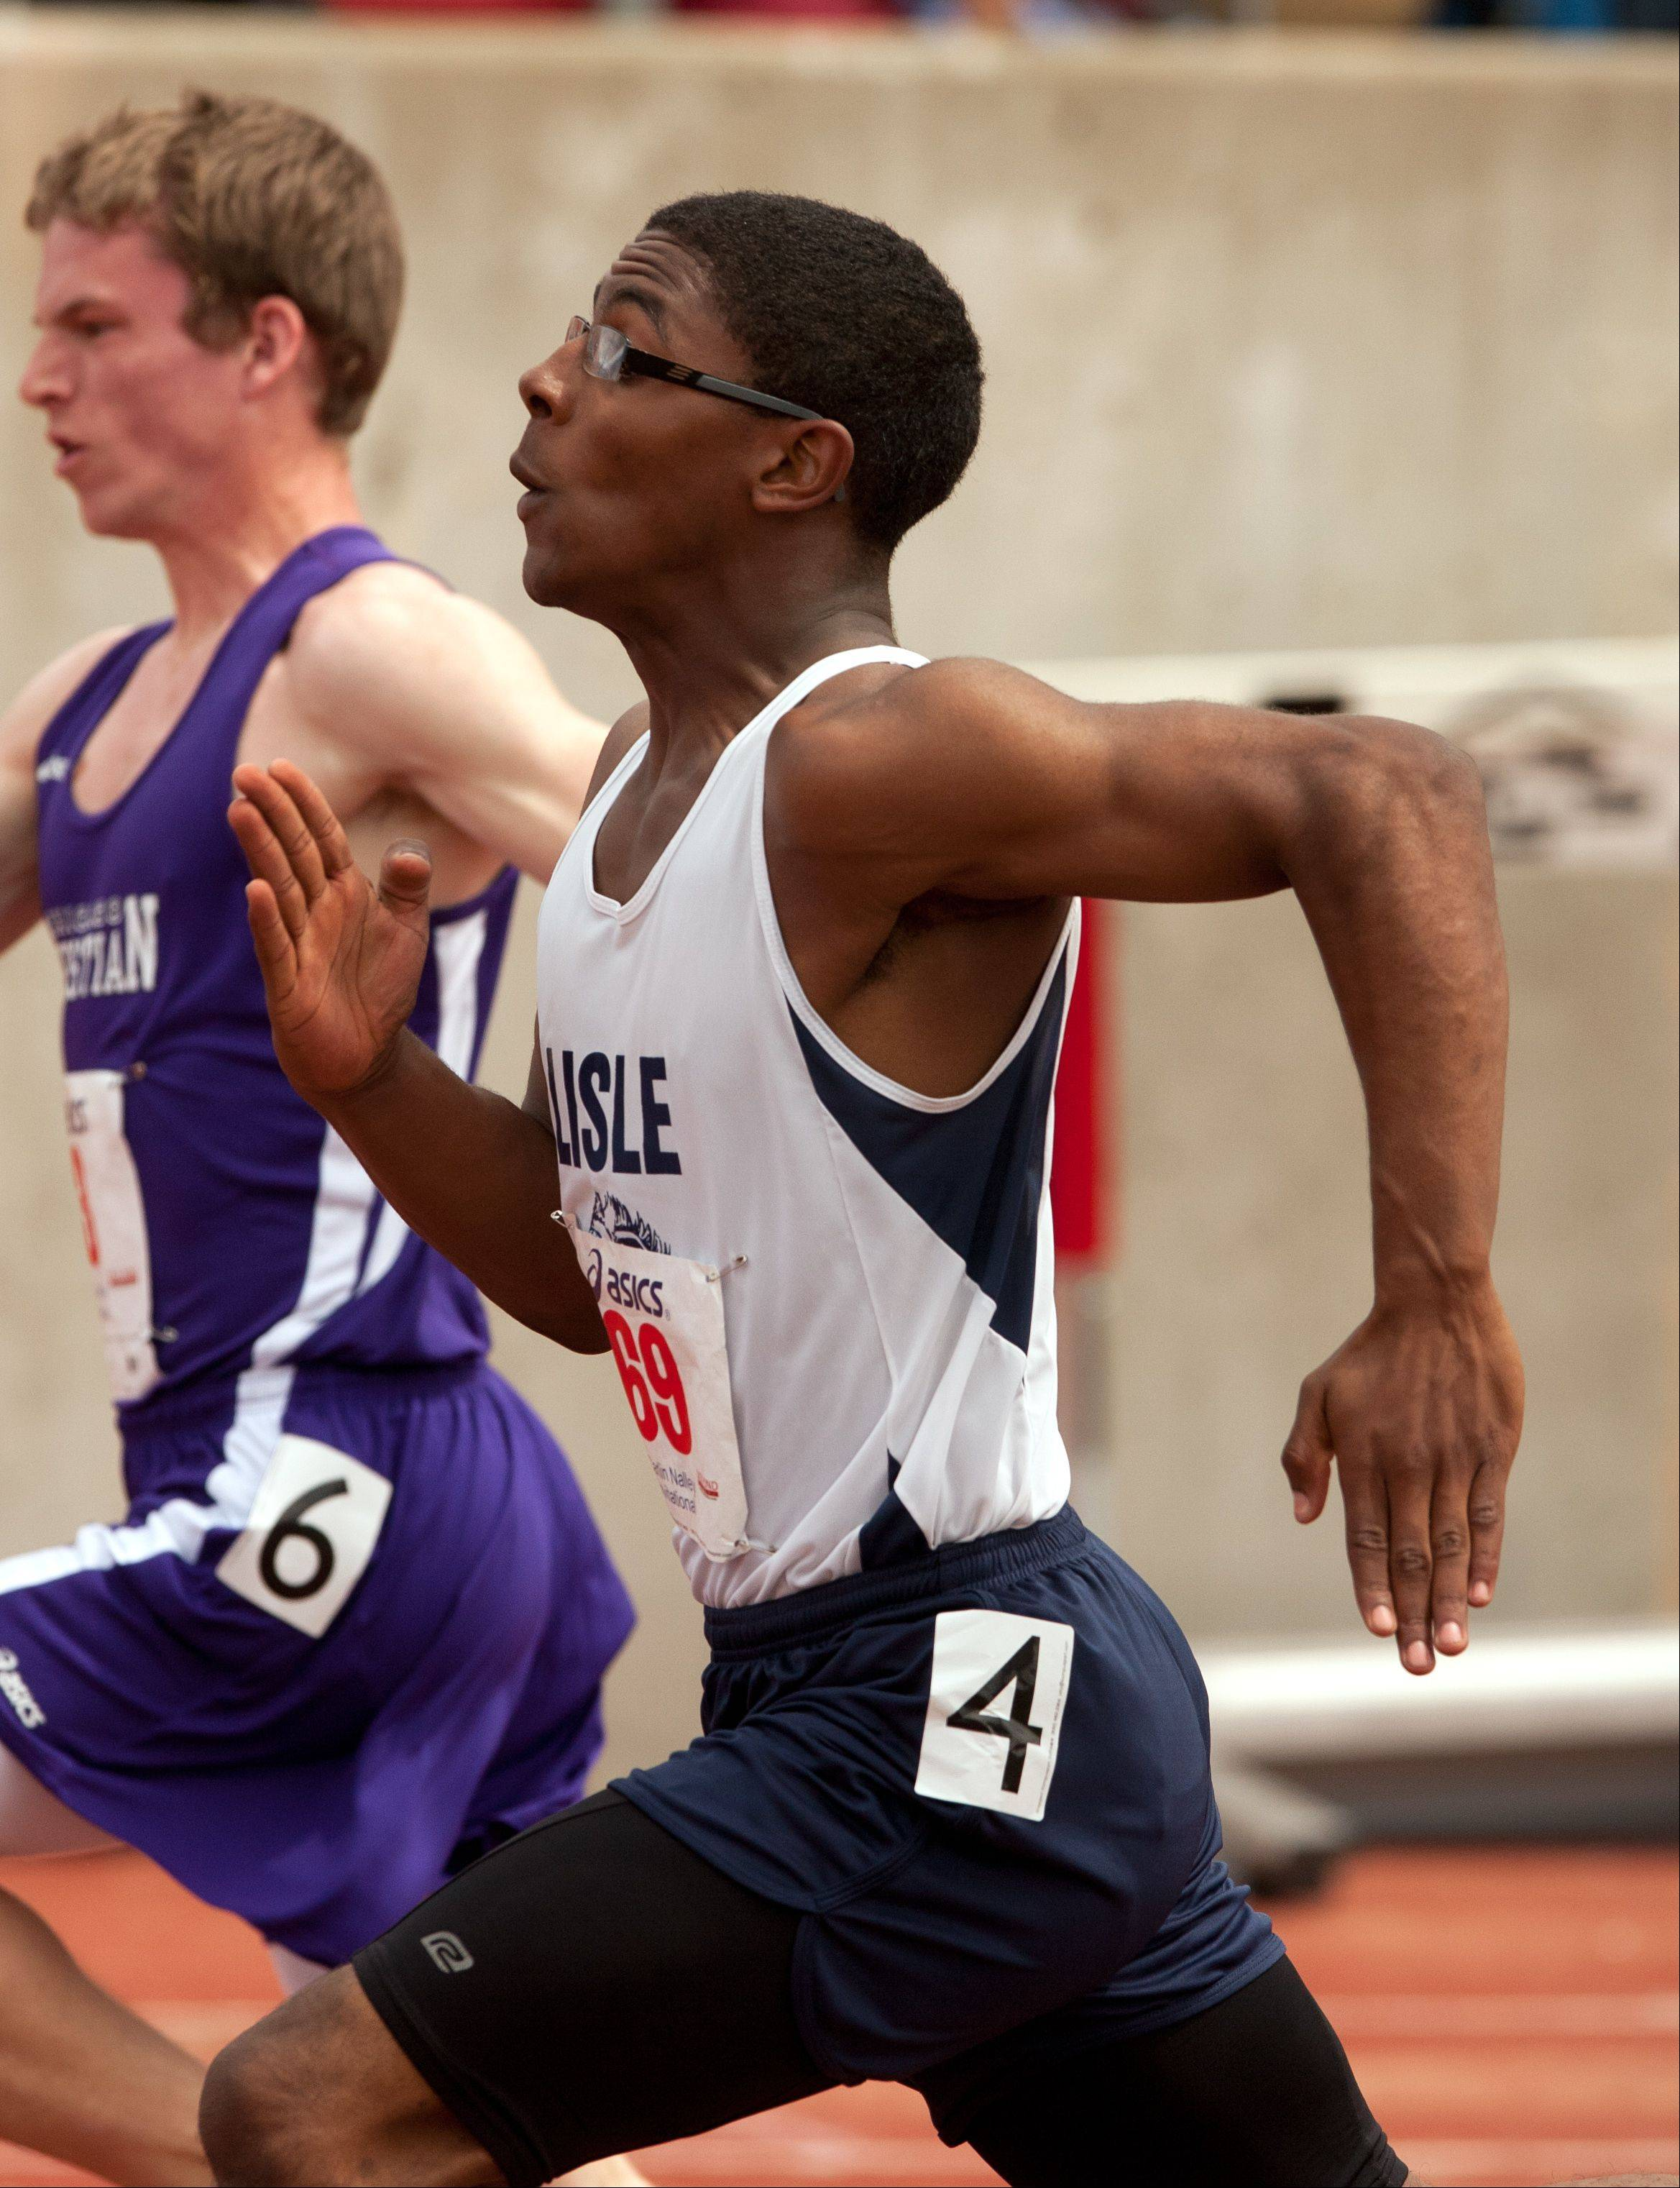 Lisle's Aaron Harris, right, competes in the 100 meter dash during the 46th annual Carlin Nalley Boys´ Track Invitational at Benedictine University in Lisle.